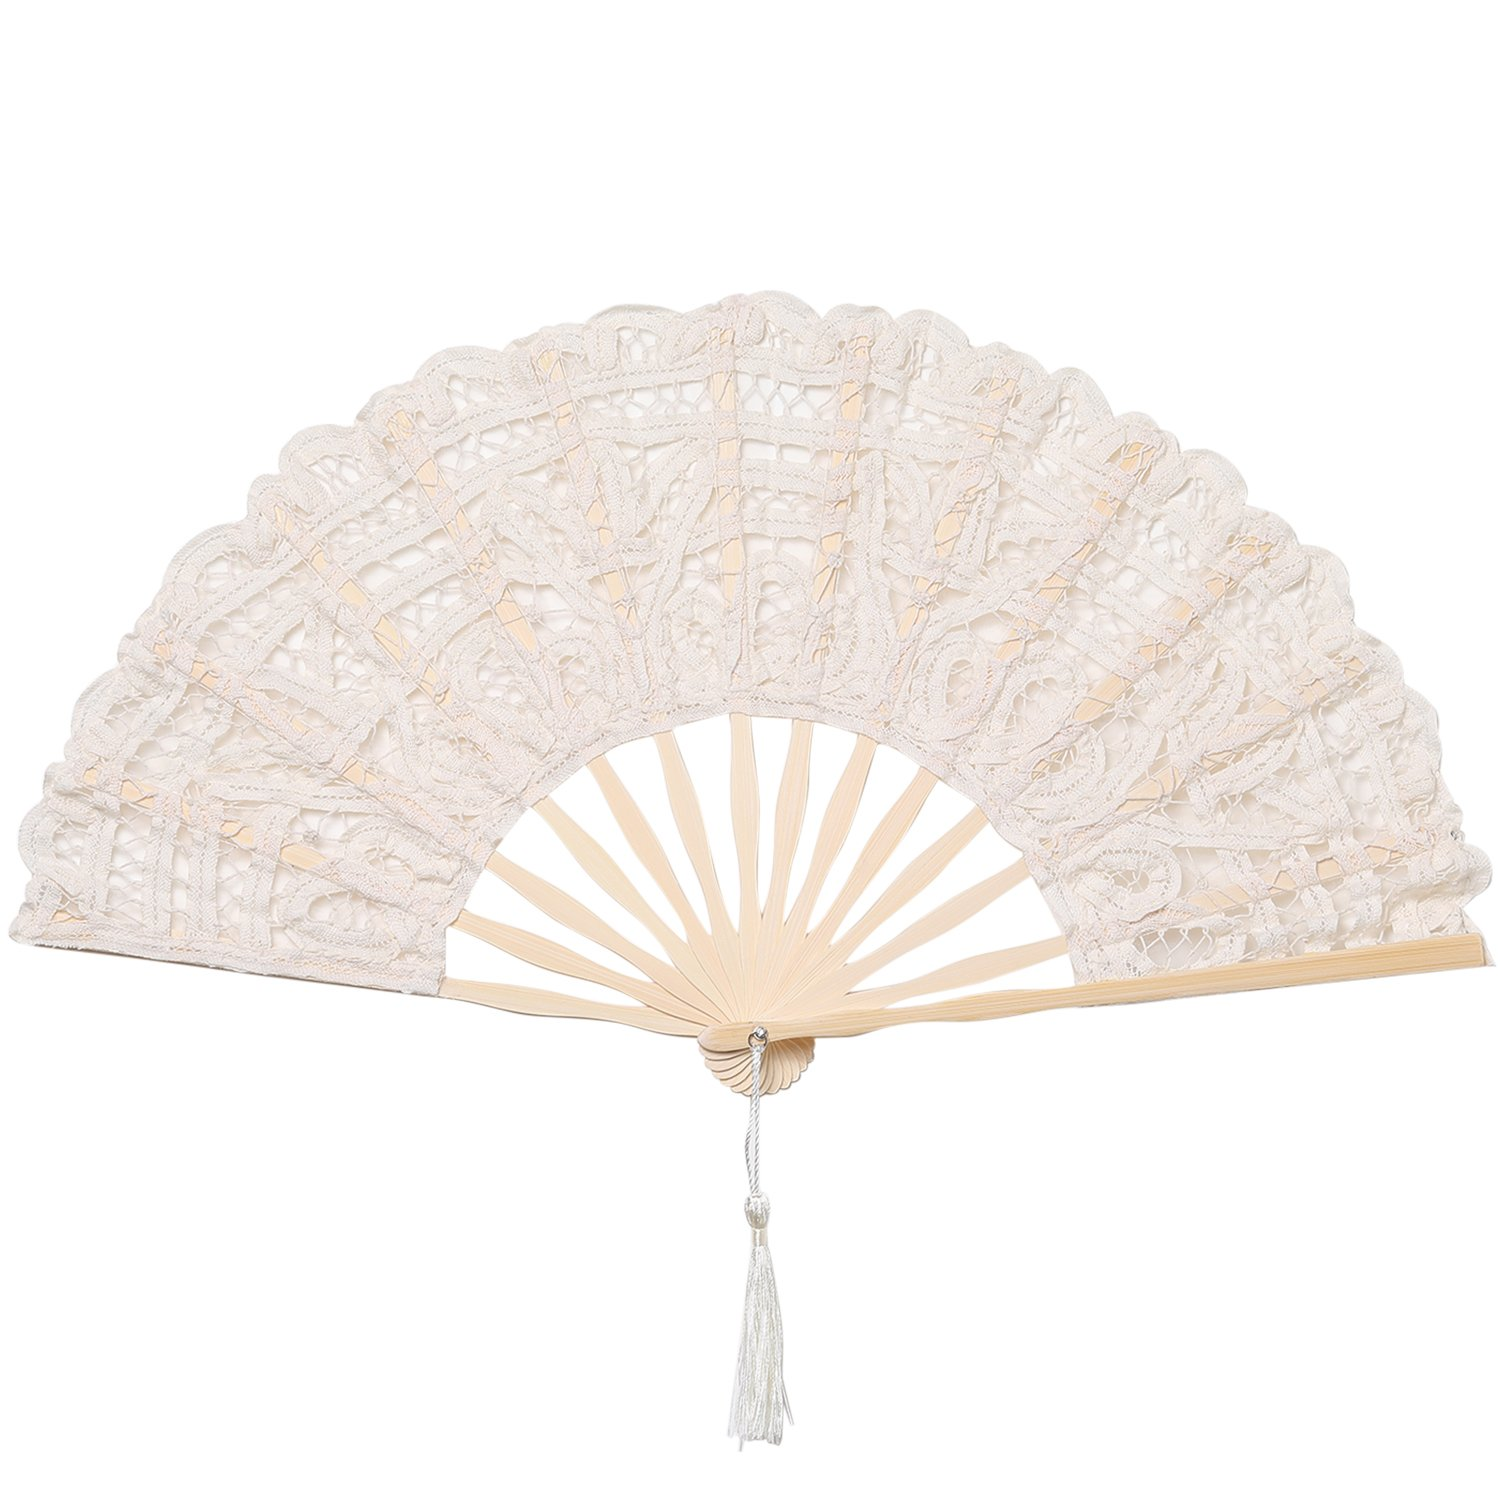 BABEYOND Cotton Lace Folding Handheld Fan Embroidered Bridal Hand Fan with Bamboo Staves for Wedding Decoration Dancing Party (Beige)